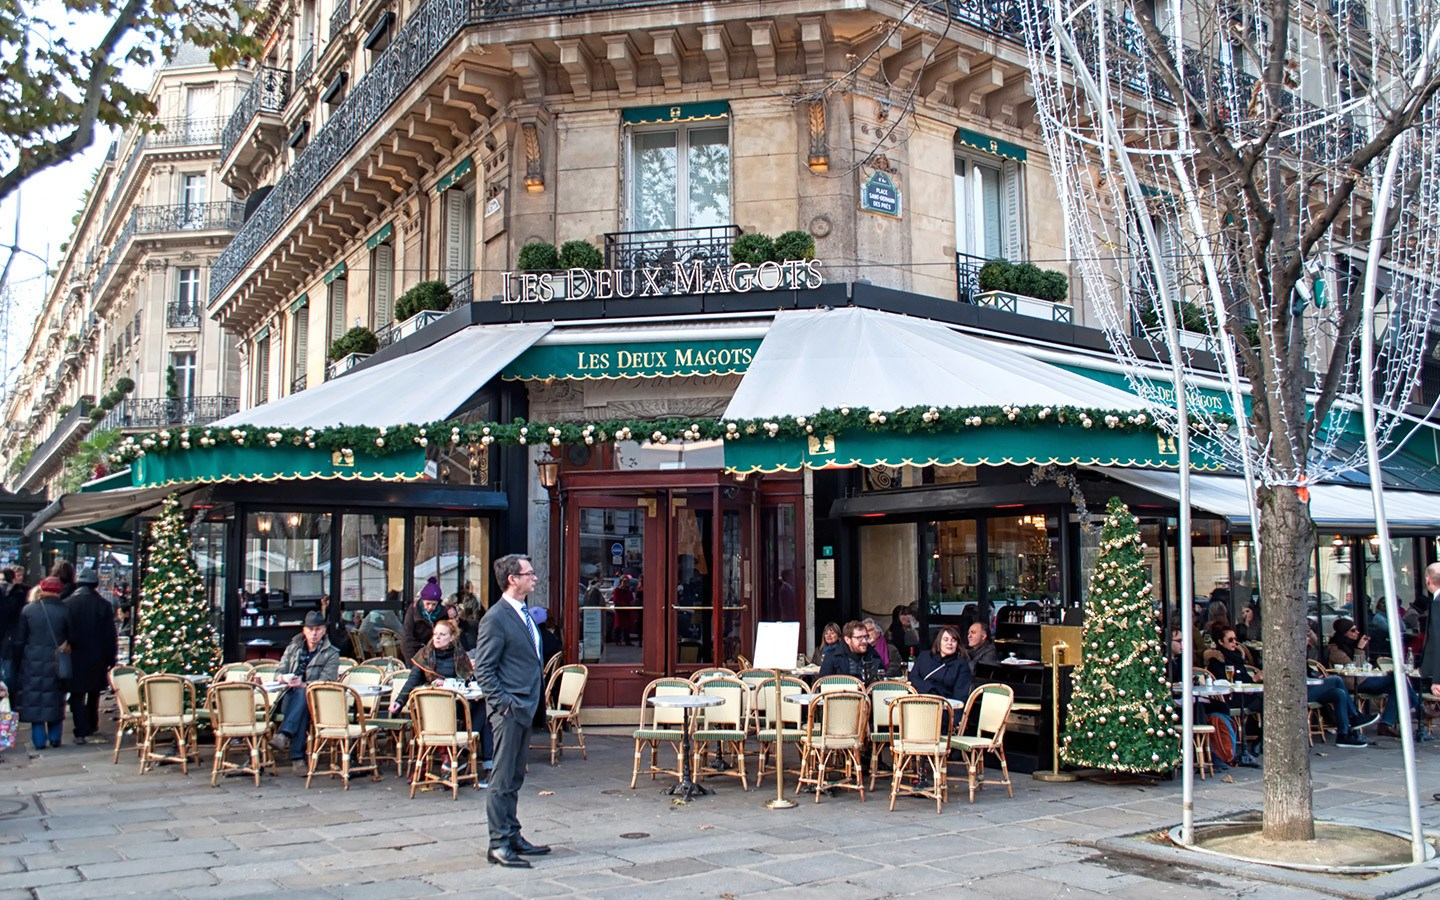 The Deux Magots café in St Germain Paris